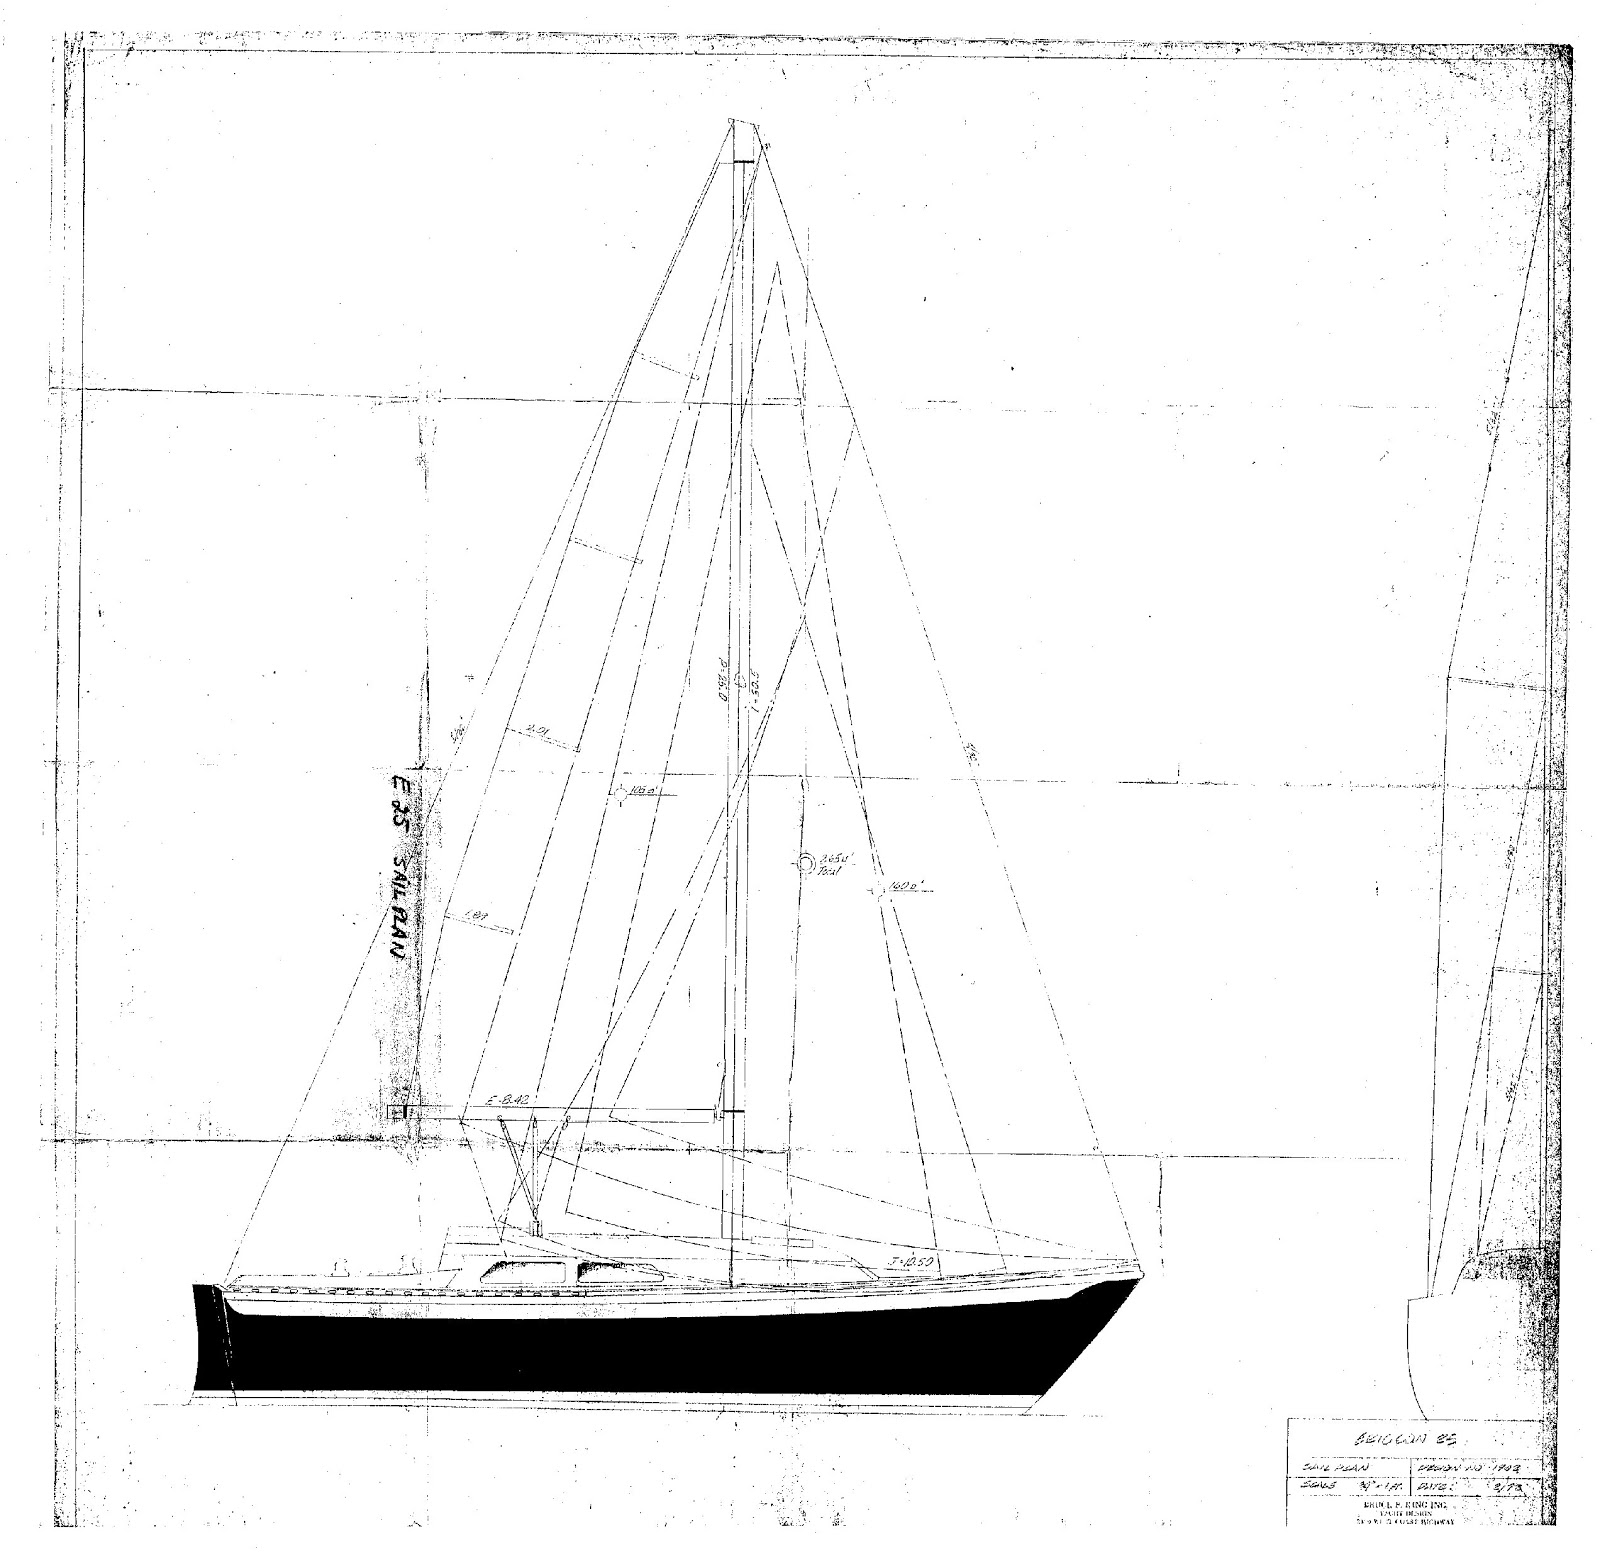 ericson 25  oystercatcher  ericson 25  diagram  sailplan  blueprint  original